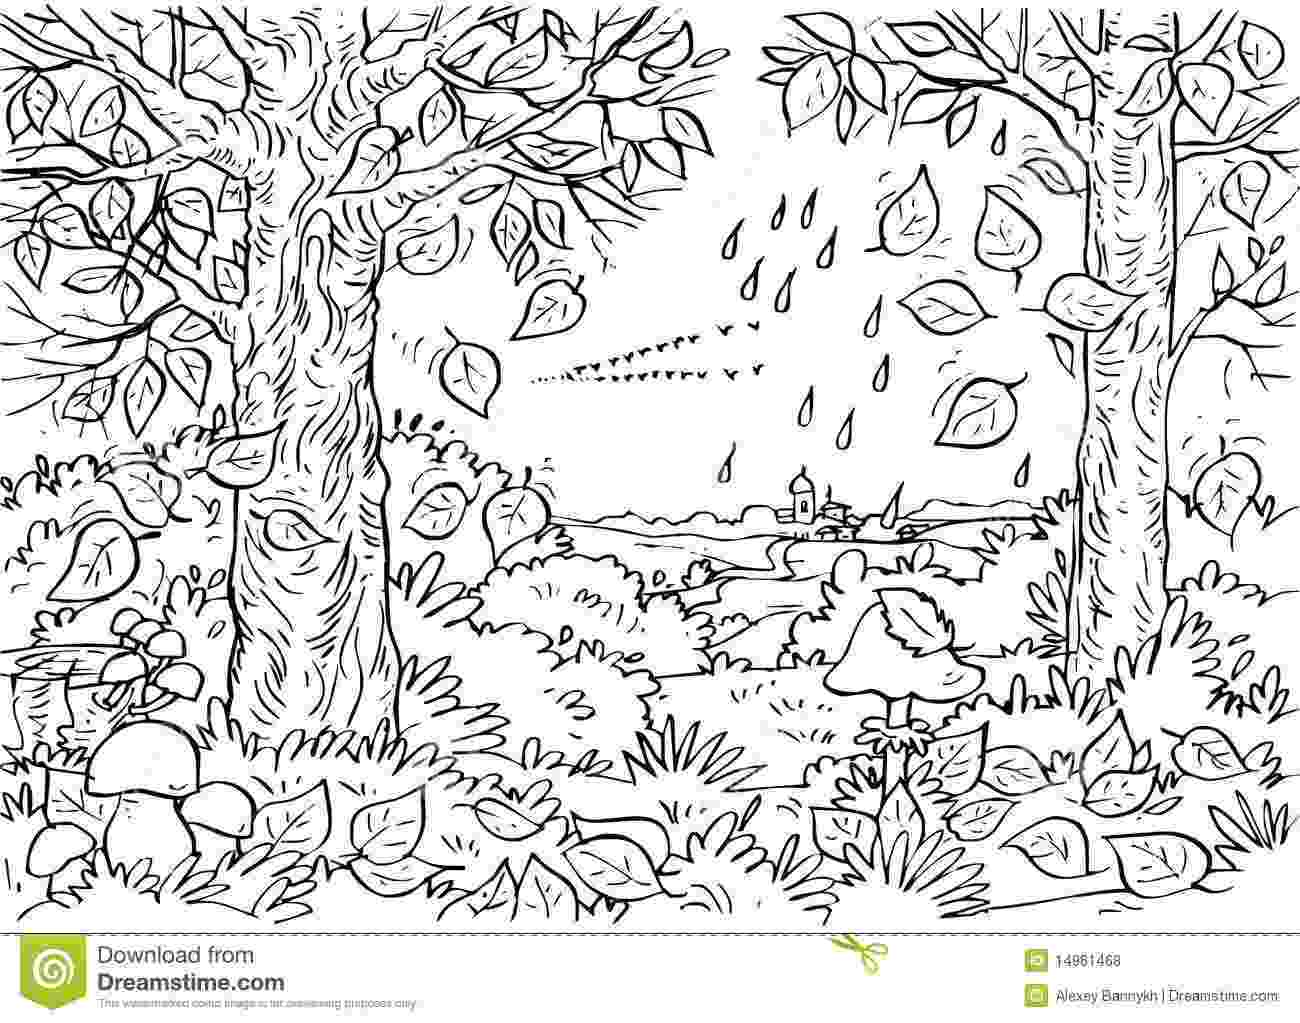 forest coloring sheets 91875 deciduous forest coloring pagesjpg 13001023 sheets forest coloring